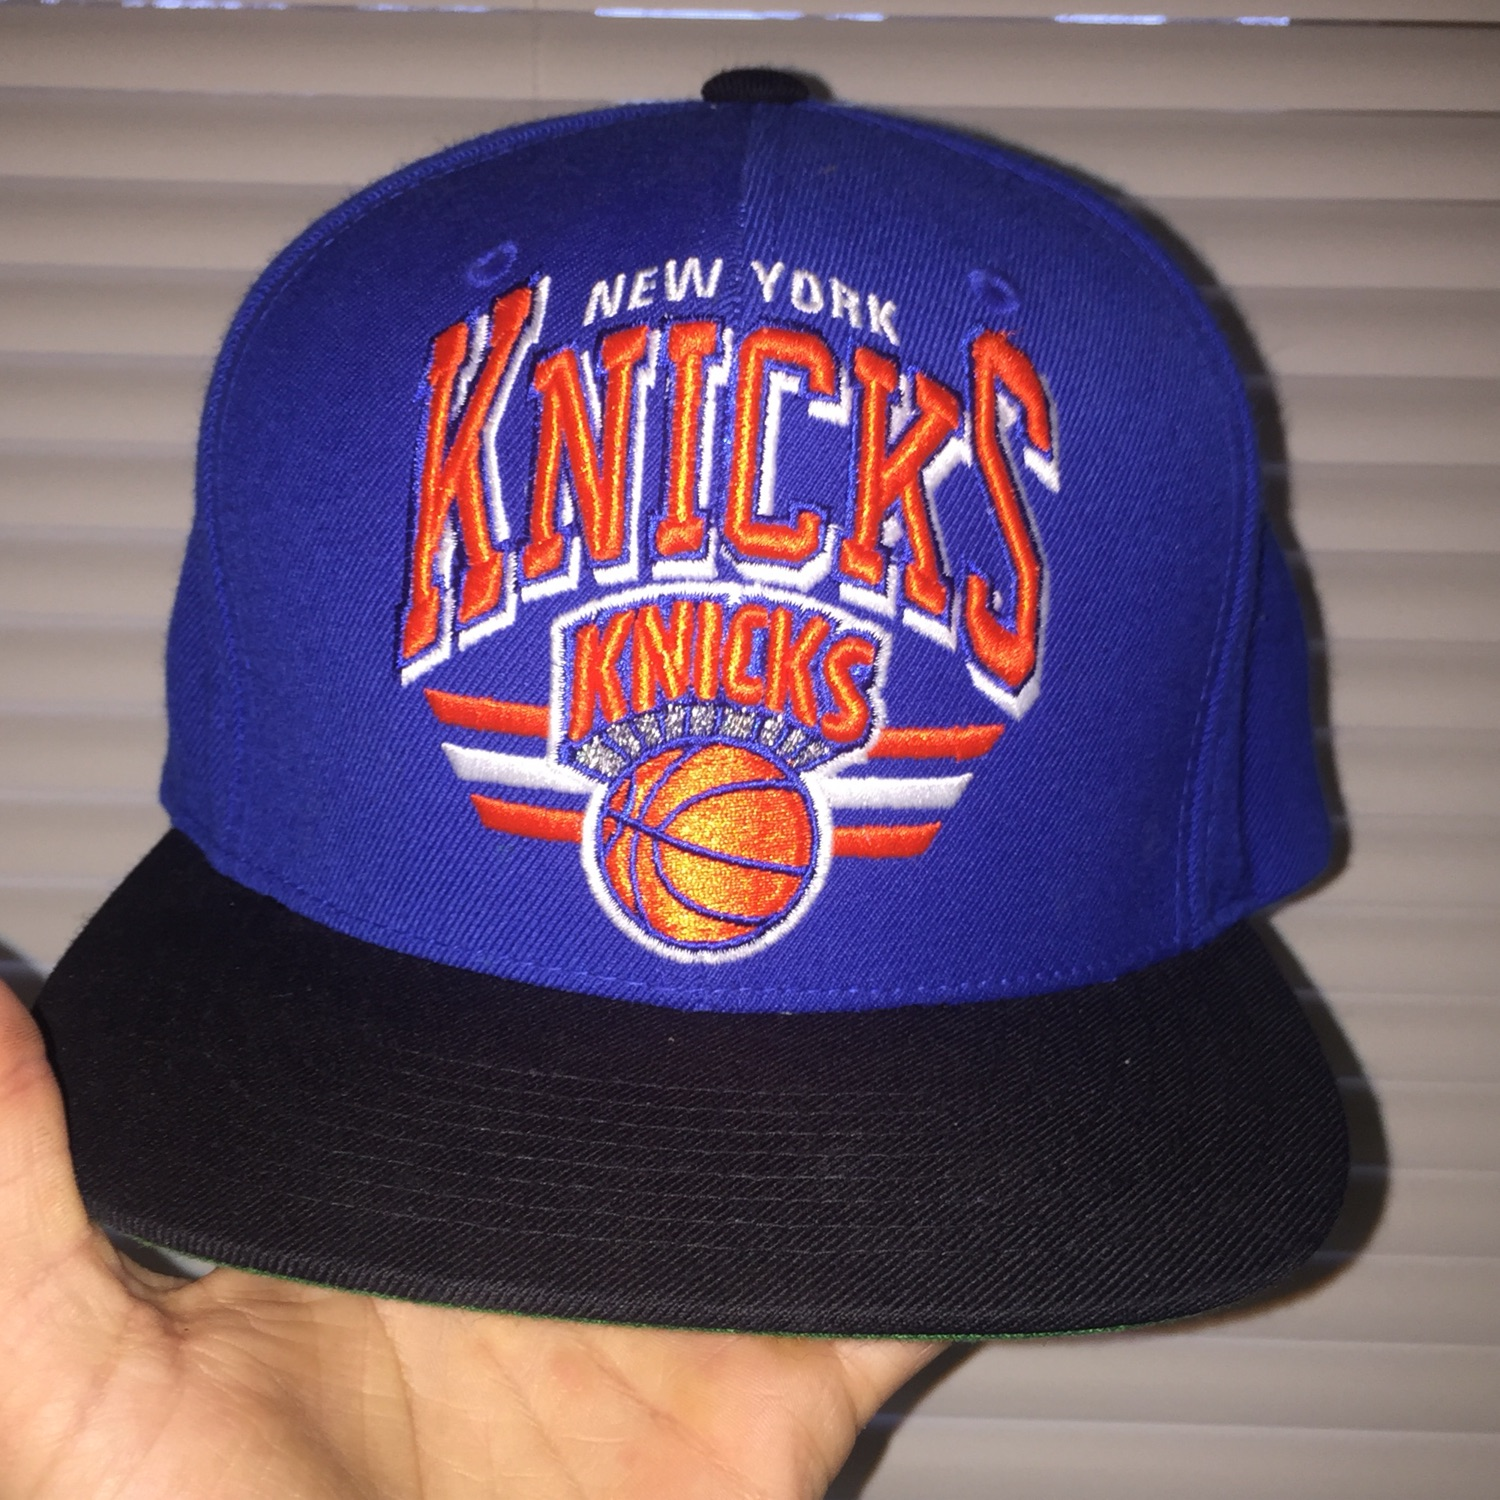 New York Knicks Hardwood Classic Snapback